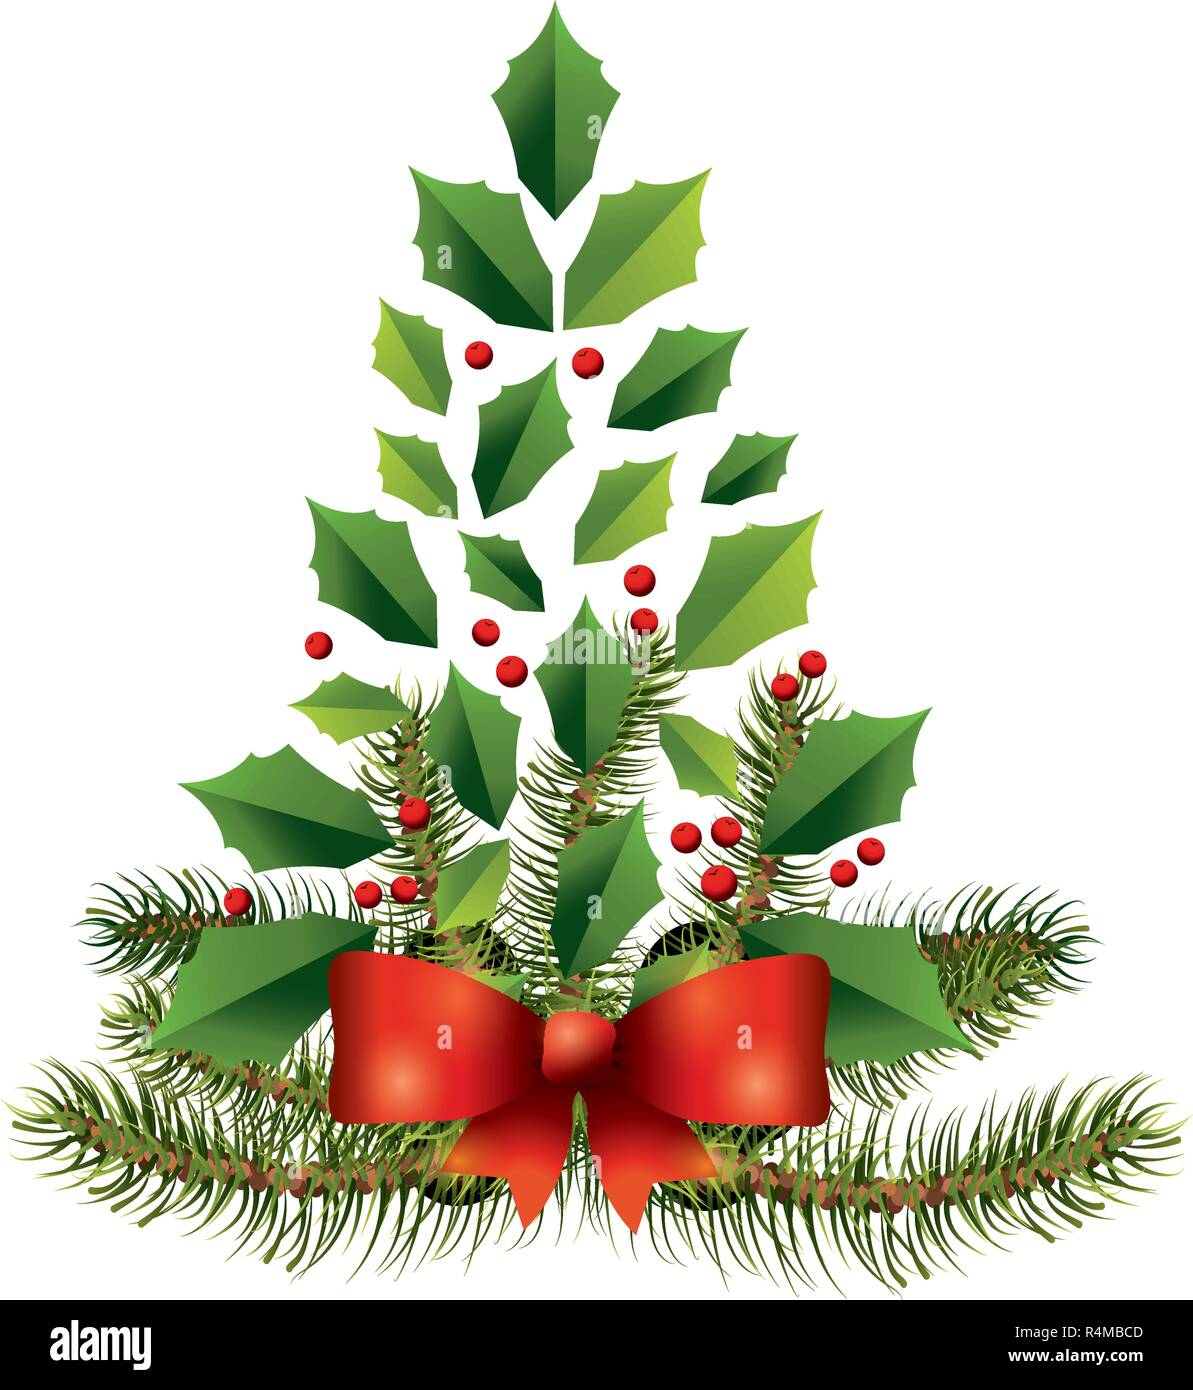 Luxury And Elegant Christmas Tree With Christmas Decoration And Red Ribbon Cartoon Vector Illustration Graphic Design Stock Vector Image Art Alamy It's all about making it to the tv by 8pm to watch your. https www alamy com luxury and elegant christmas tree with christmas decoration and red ribbon cartoon vector illustration graphic design image226641421 html